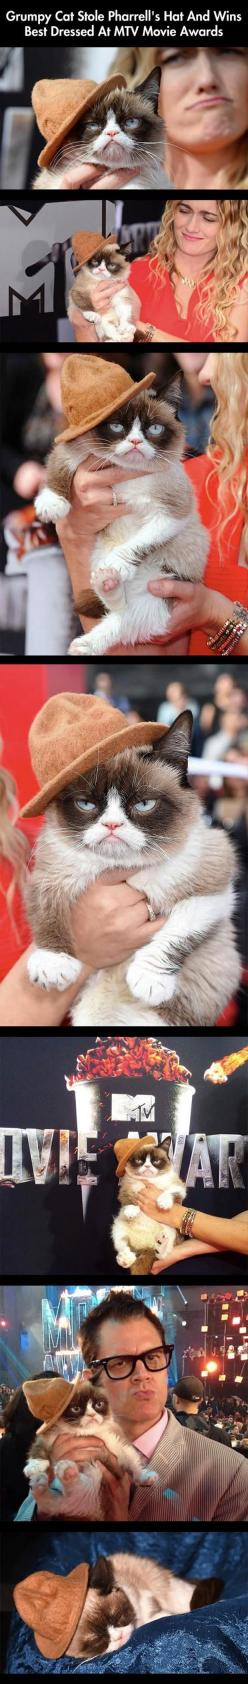 Random Pictures Of The Day - 50 Pics: Movie Awards, Mtv Awards, Funny Quotes, Best Dressed, Cat Stole, Grumpy Cat, Mtv Movie, Has, Animal